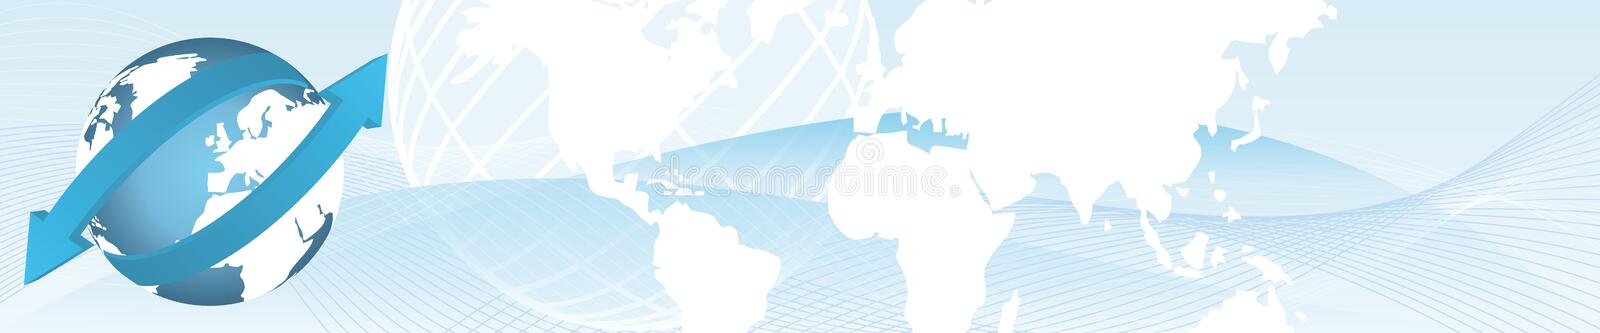 Import export banner royalty free illustration